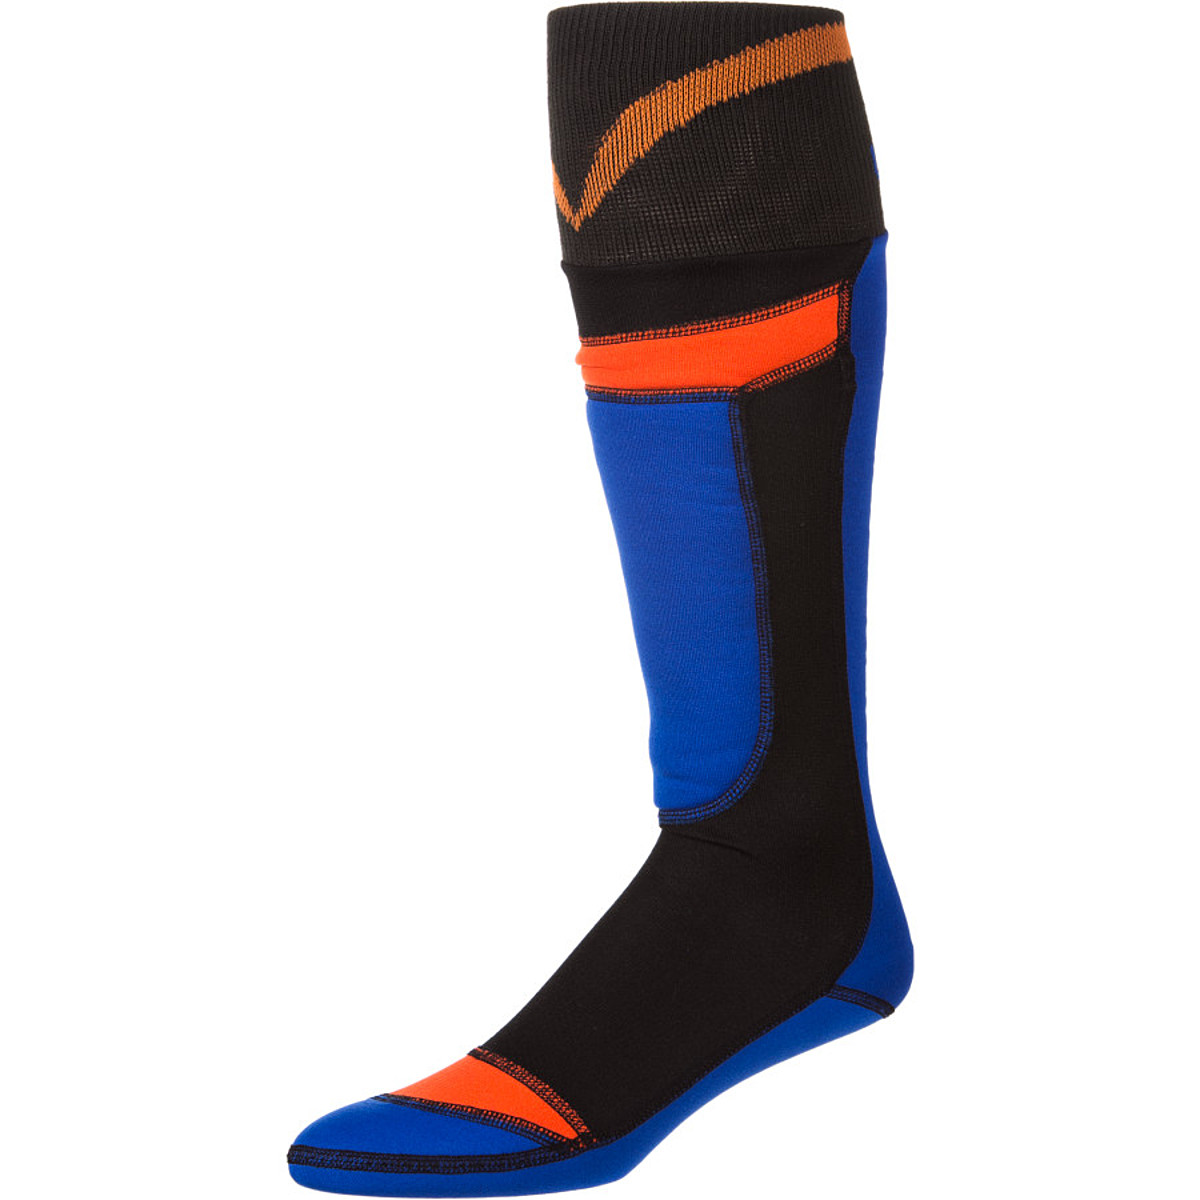 Lorpen Polartec Ultralight Ski Sock